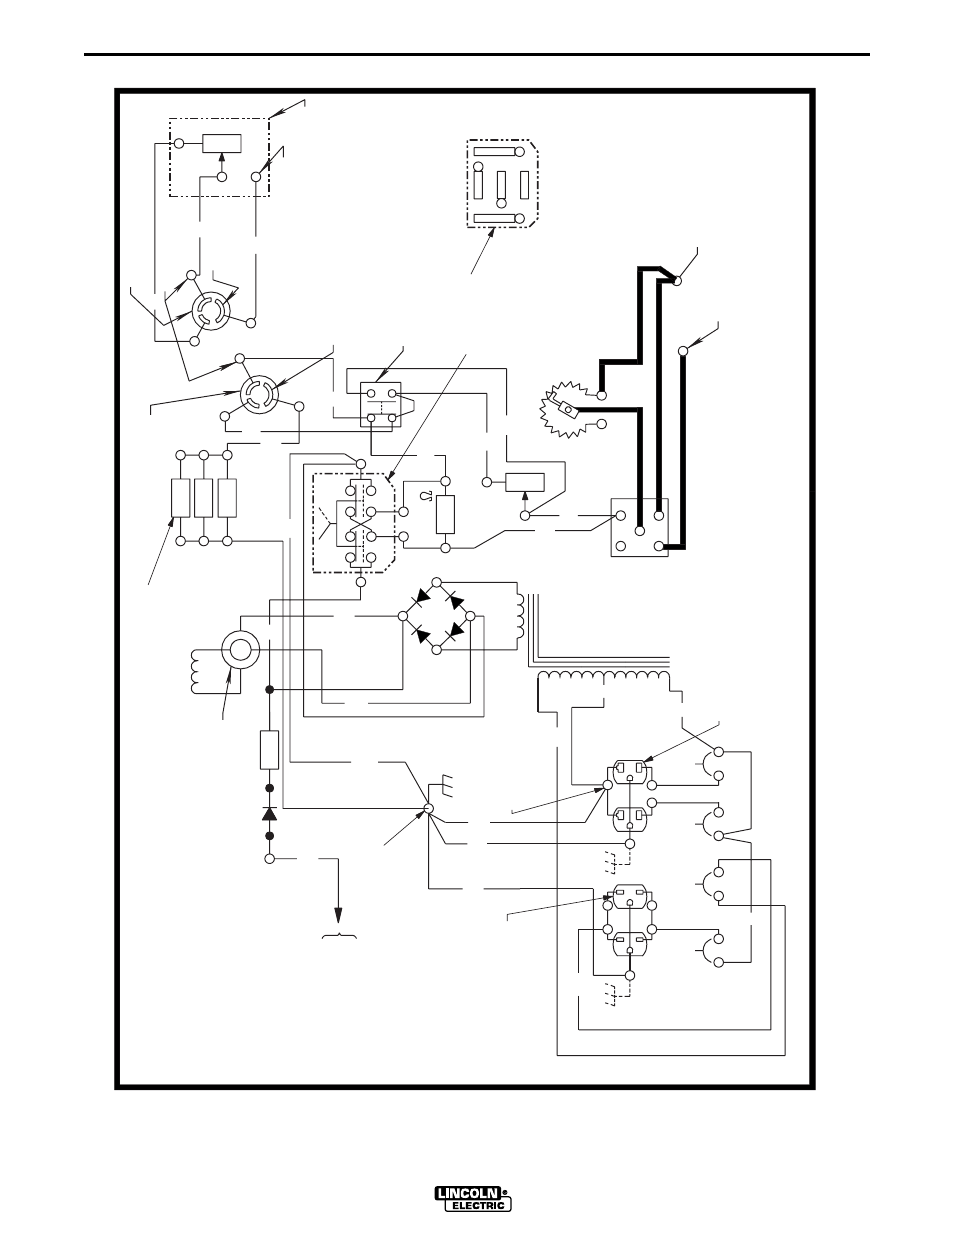 lincoln 400 as wiring diagram lincoln wiring diagrams online lincoln sae 400 welder wiring diagram lincoln printable